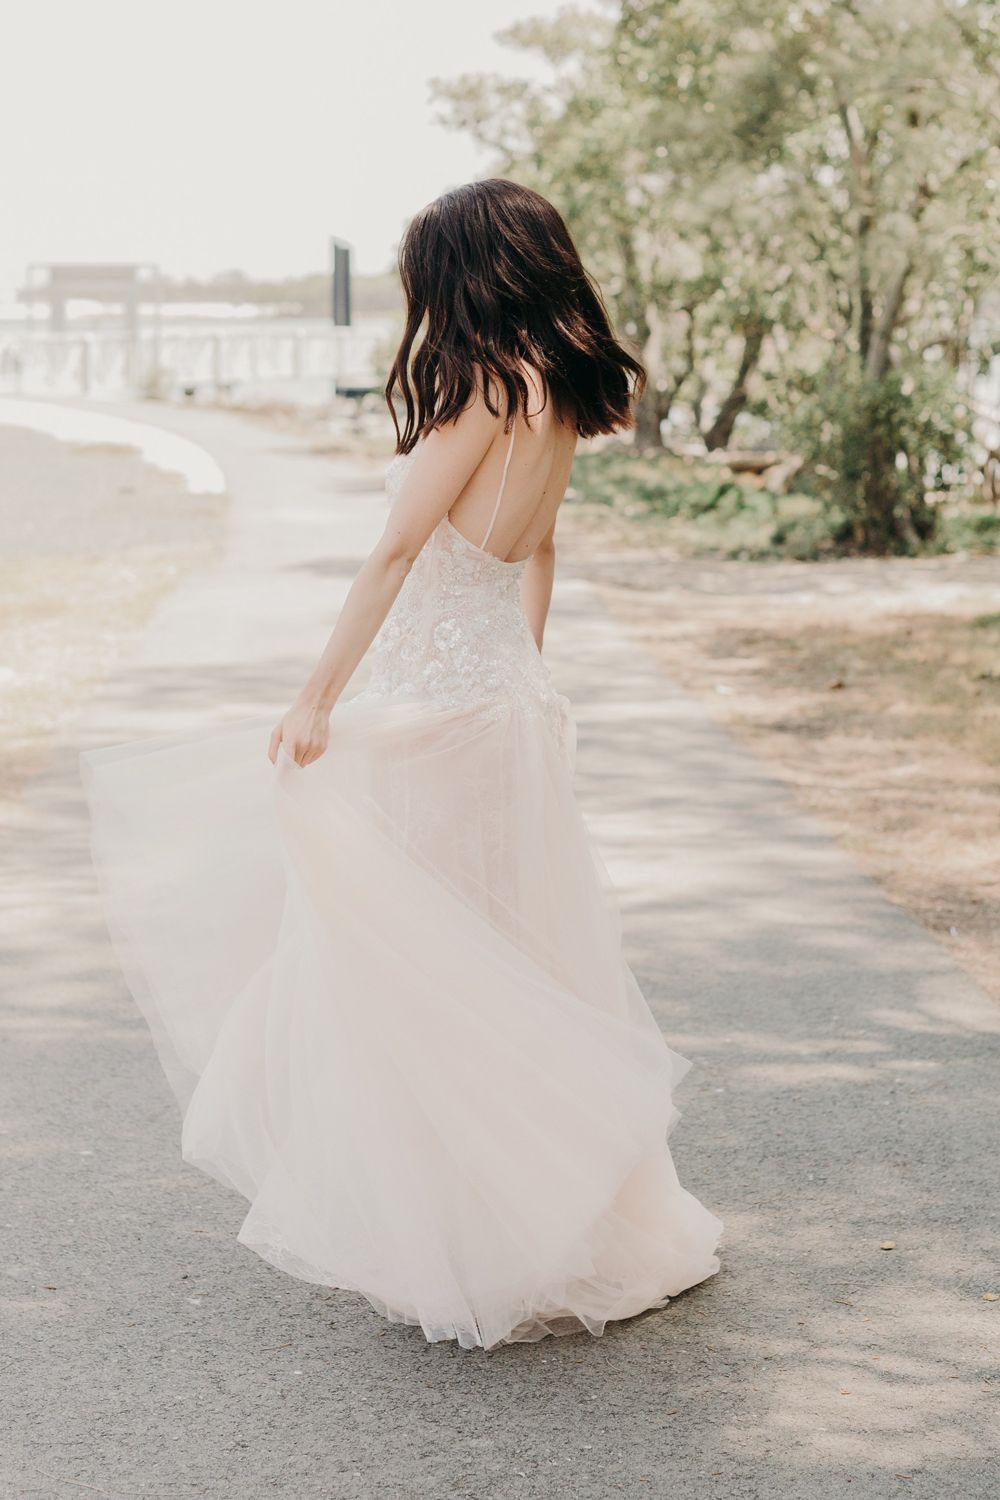 Drop waist bridal gown with tulle skirt by goddess by nature